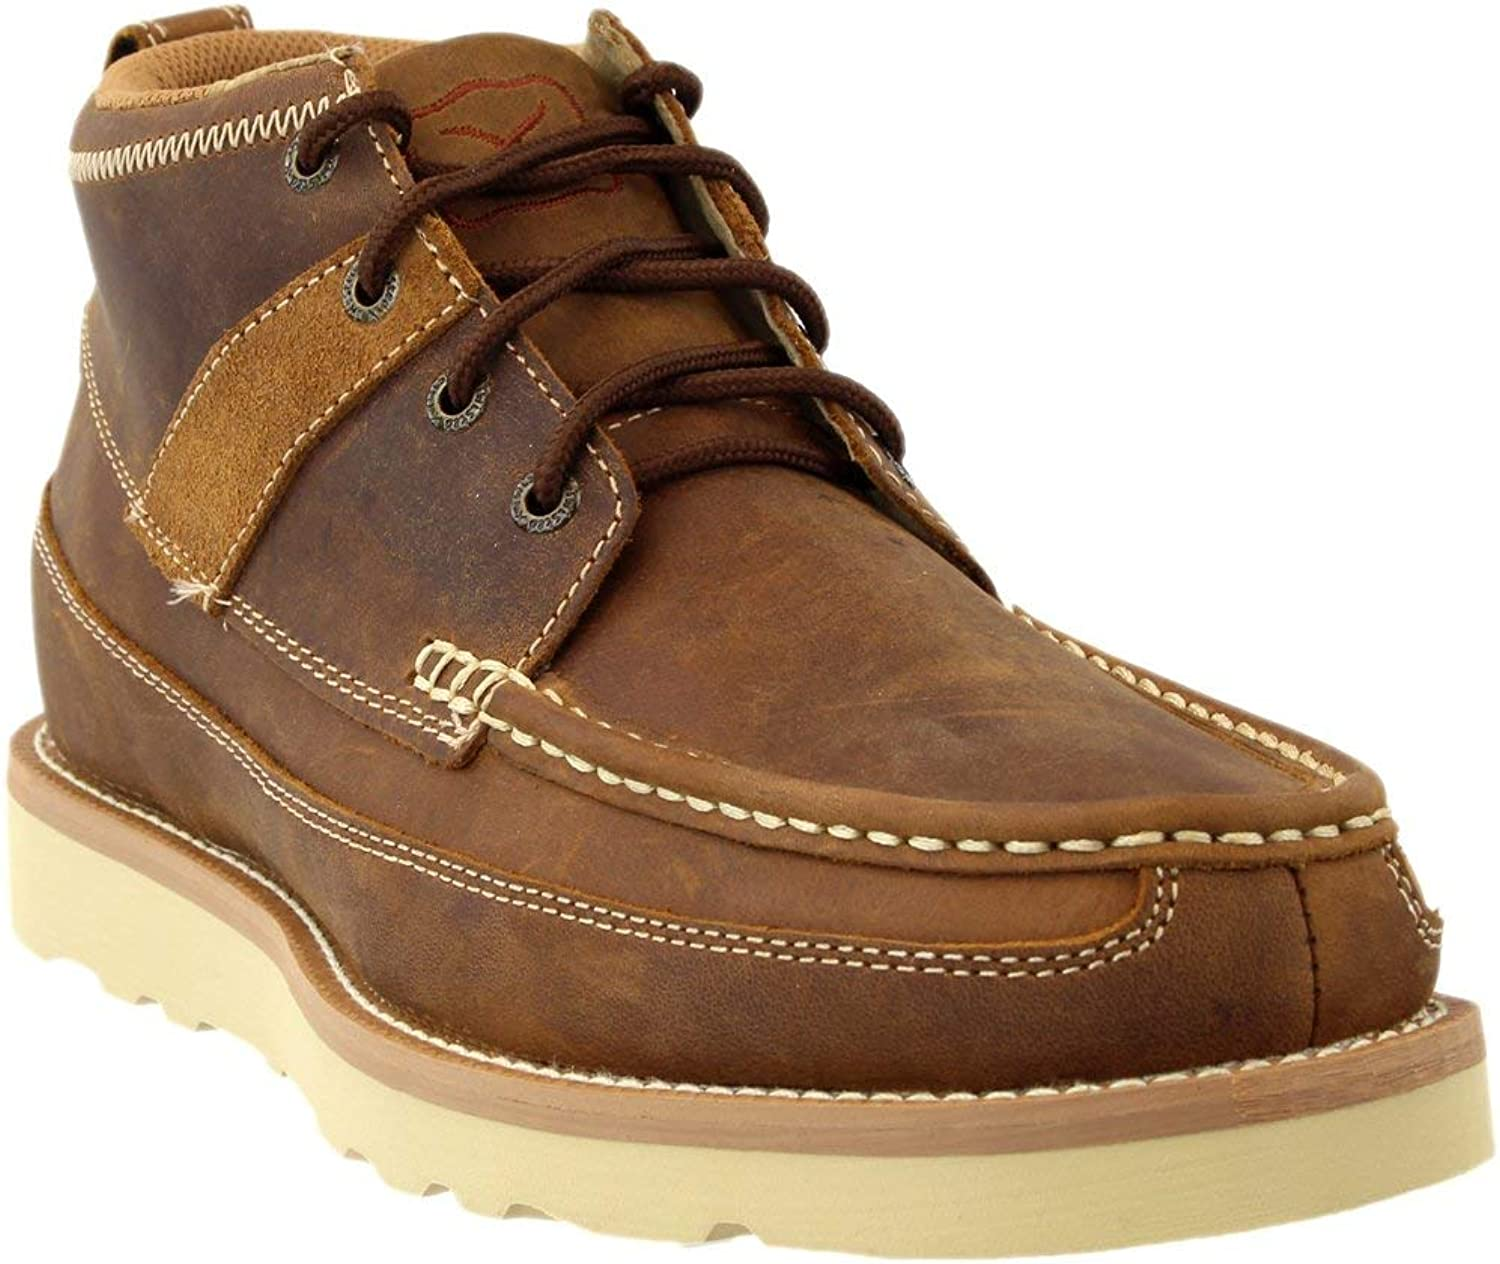 Twisted X Men's Oiled Leather Boot Moc Toe